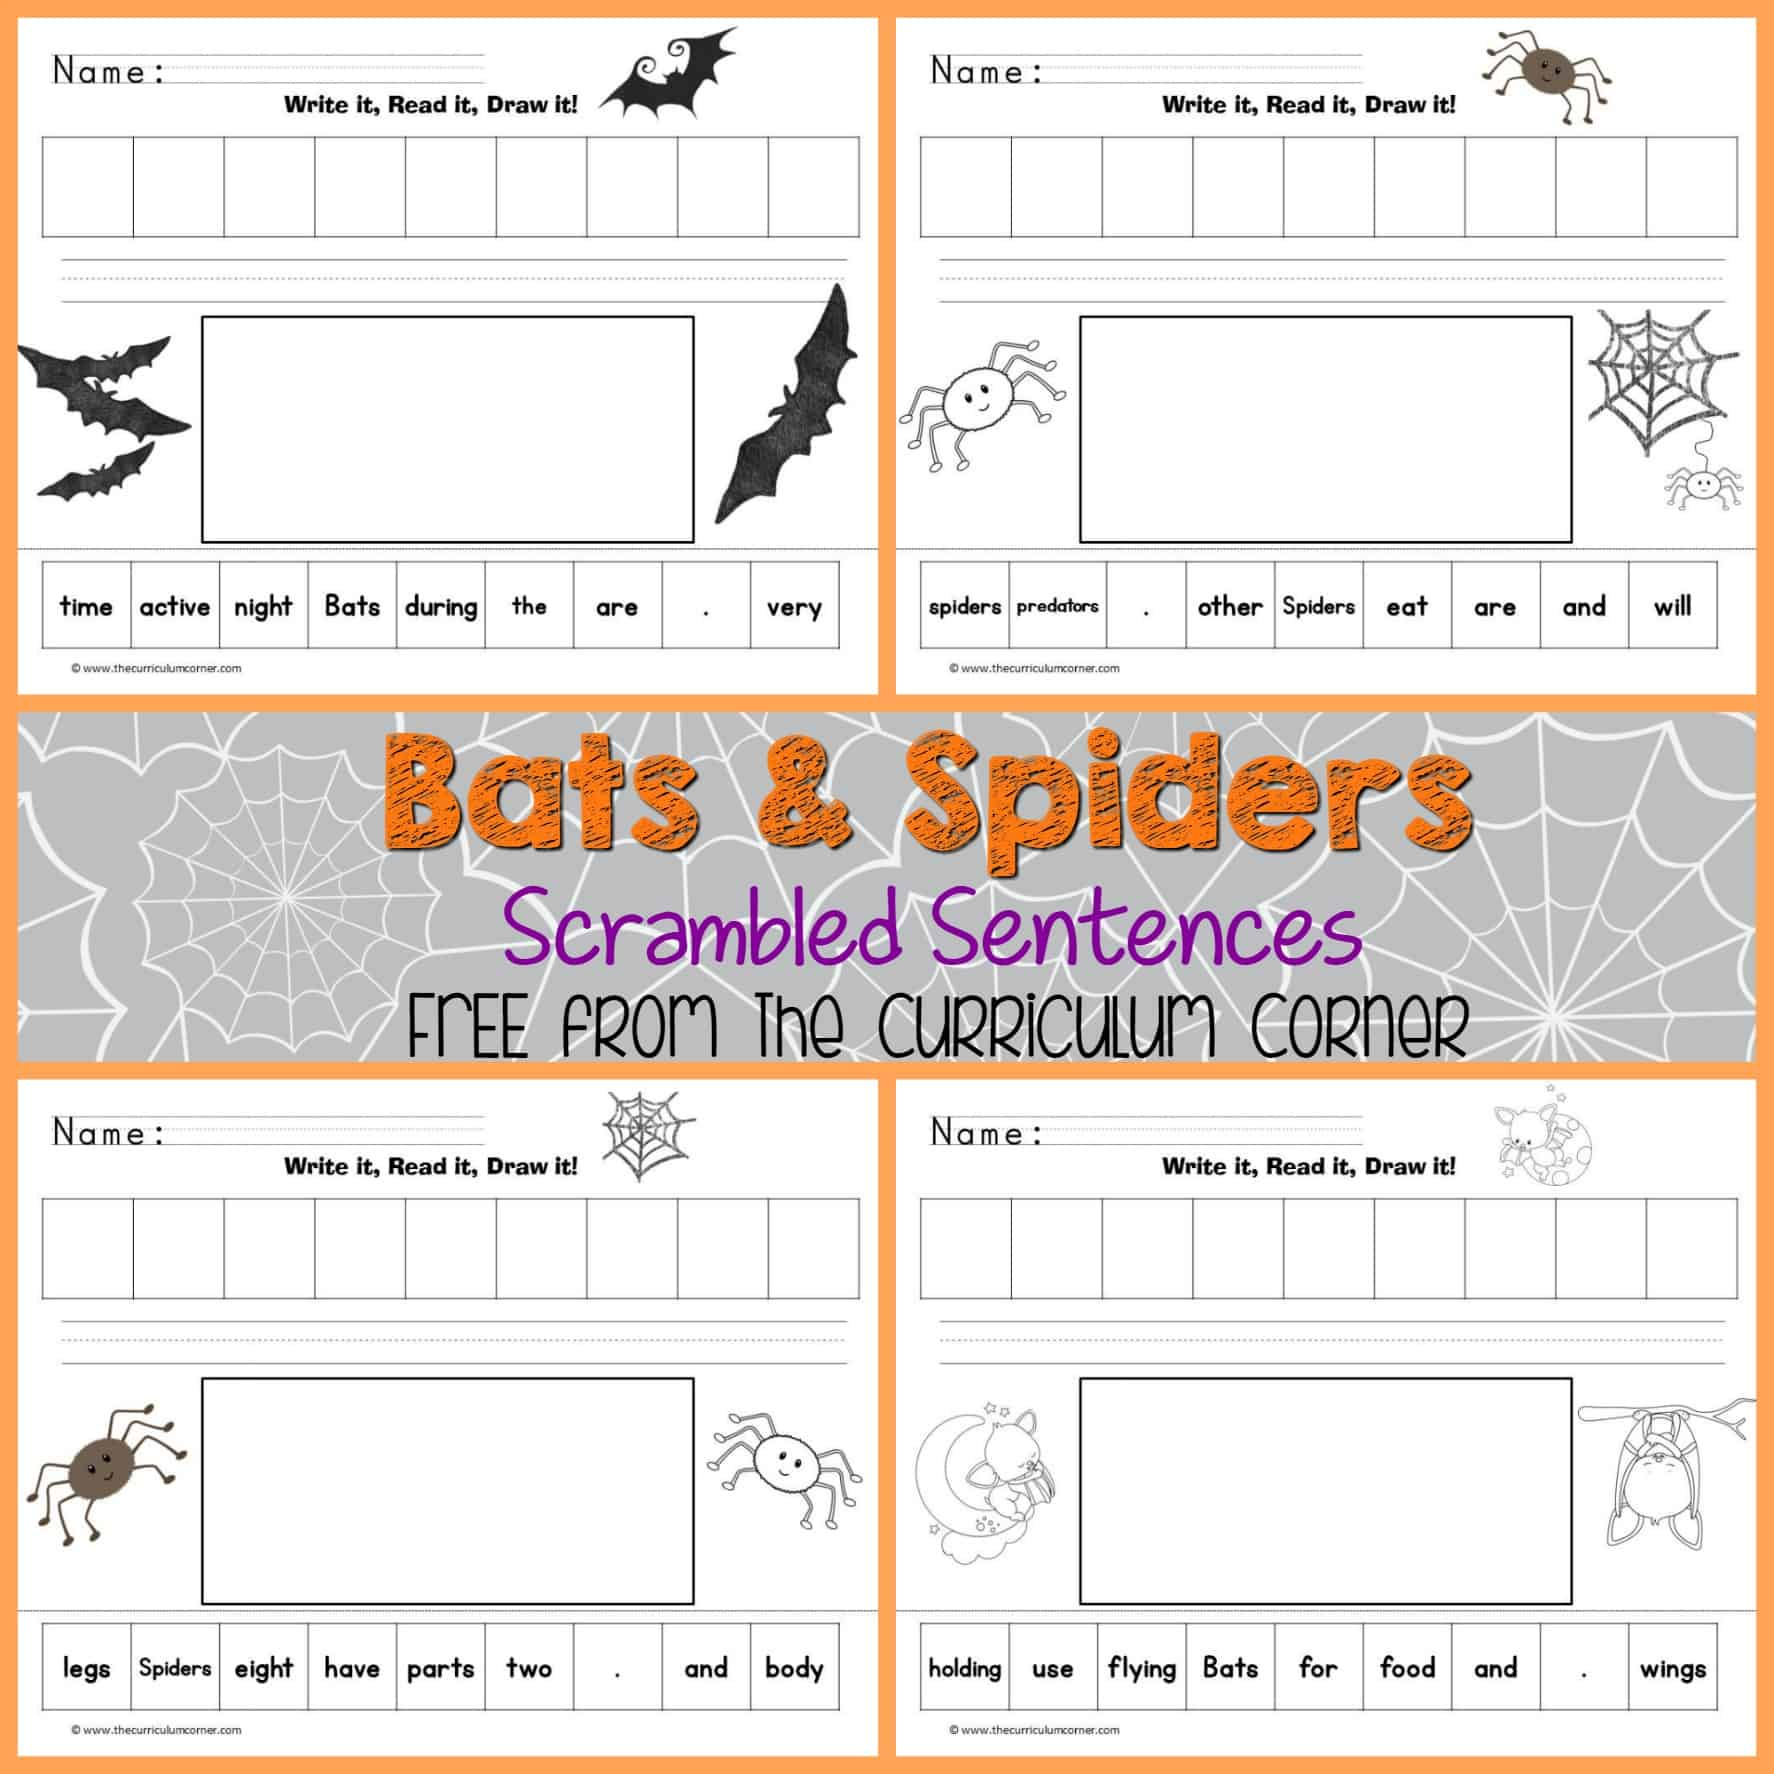 Bats & Spiders Read, Write & Draw It